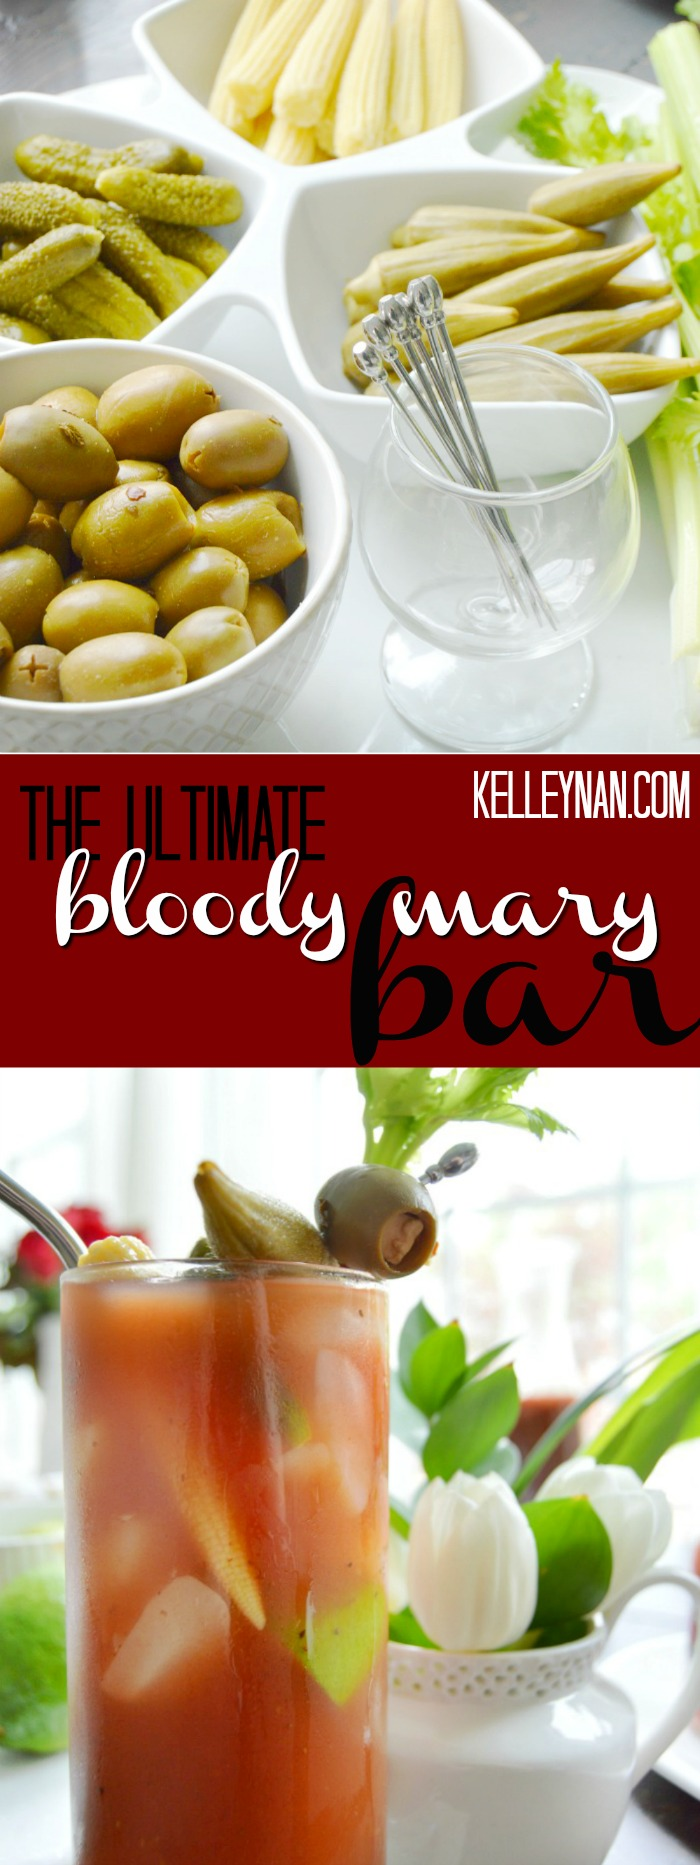 The Ultimate Bloody Mary Bar